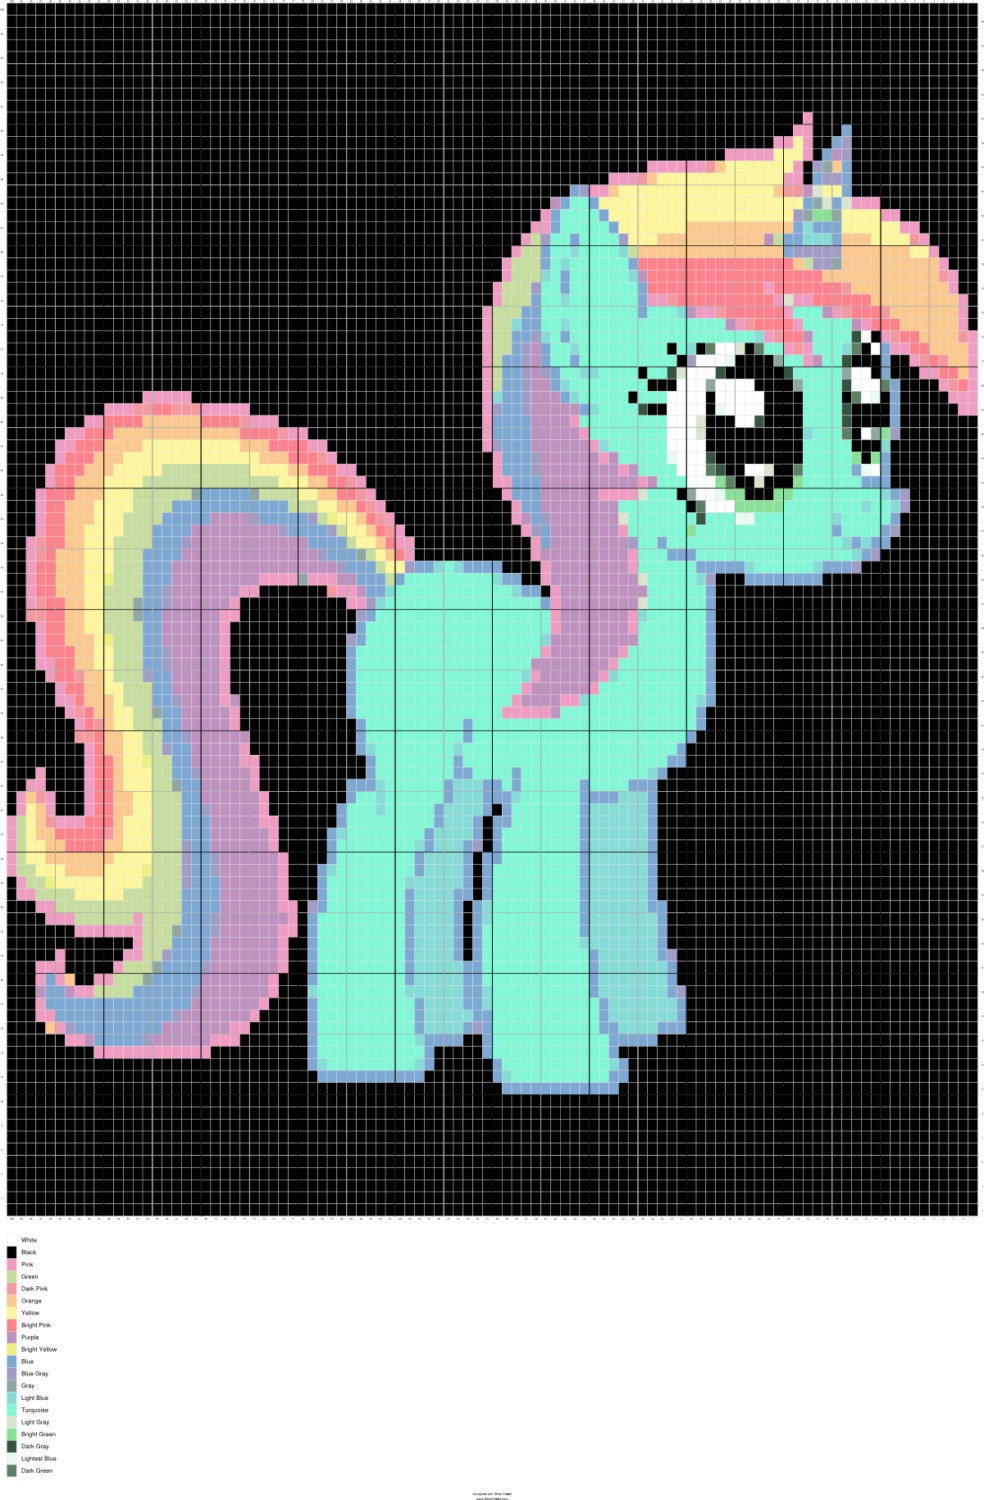 Rainbow Unicorn Knitting Pattern : Knit rainbow unicorn chart knitting graph intarsia